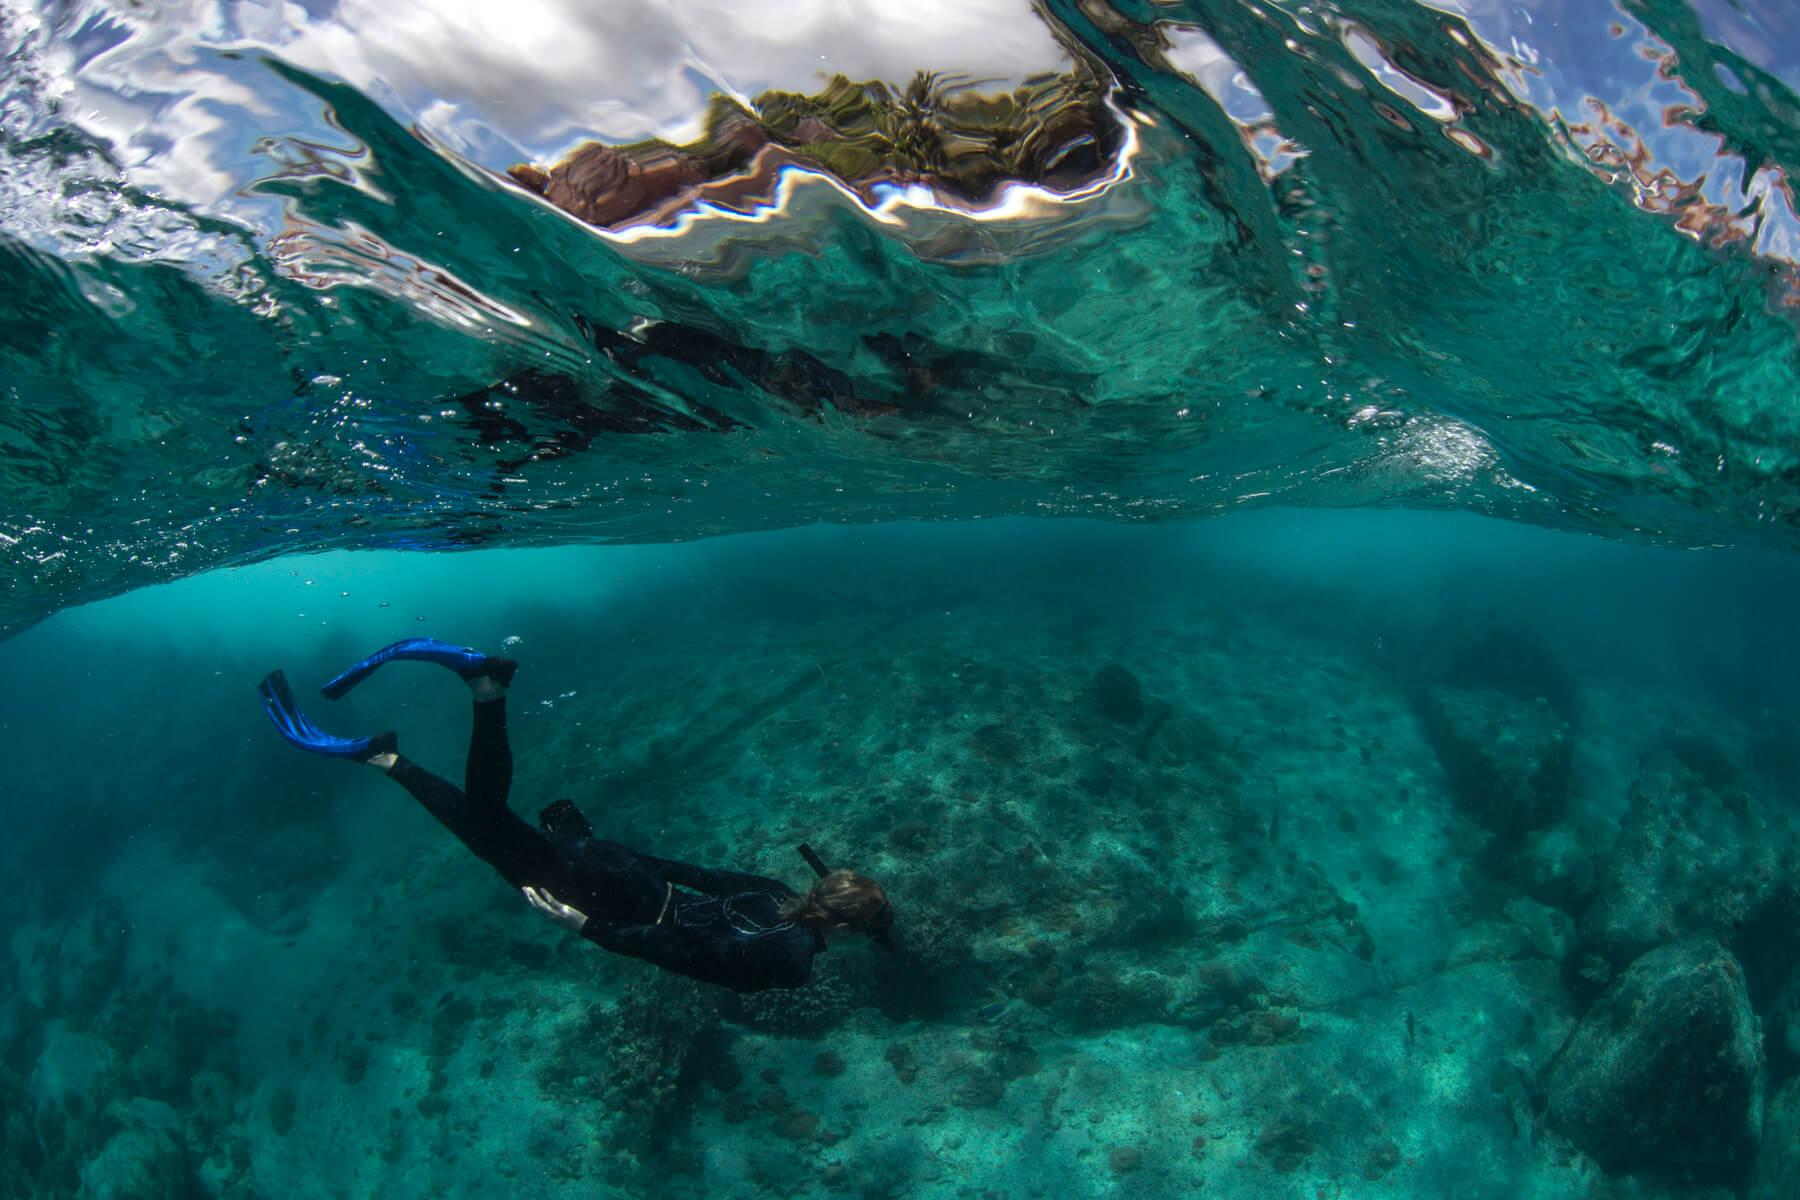 Rash guards, dive skins, and wetsuits reduce the need for sunscreen altogether. © The Ocean Agency